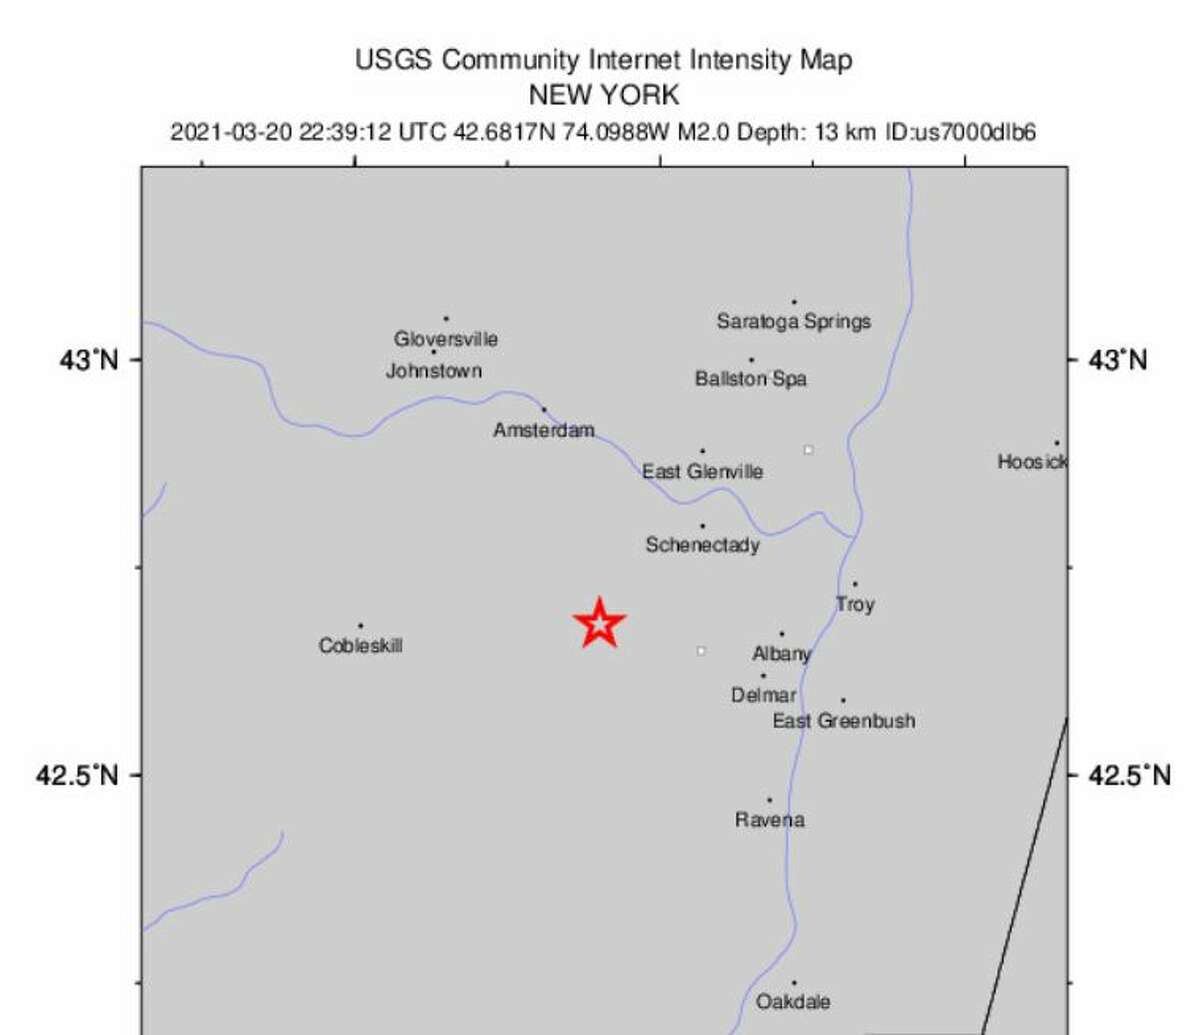 The USGS detected a 2.0 earthquake near Altamont on Saturday.